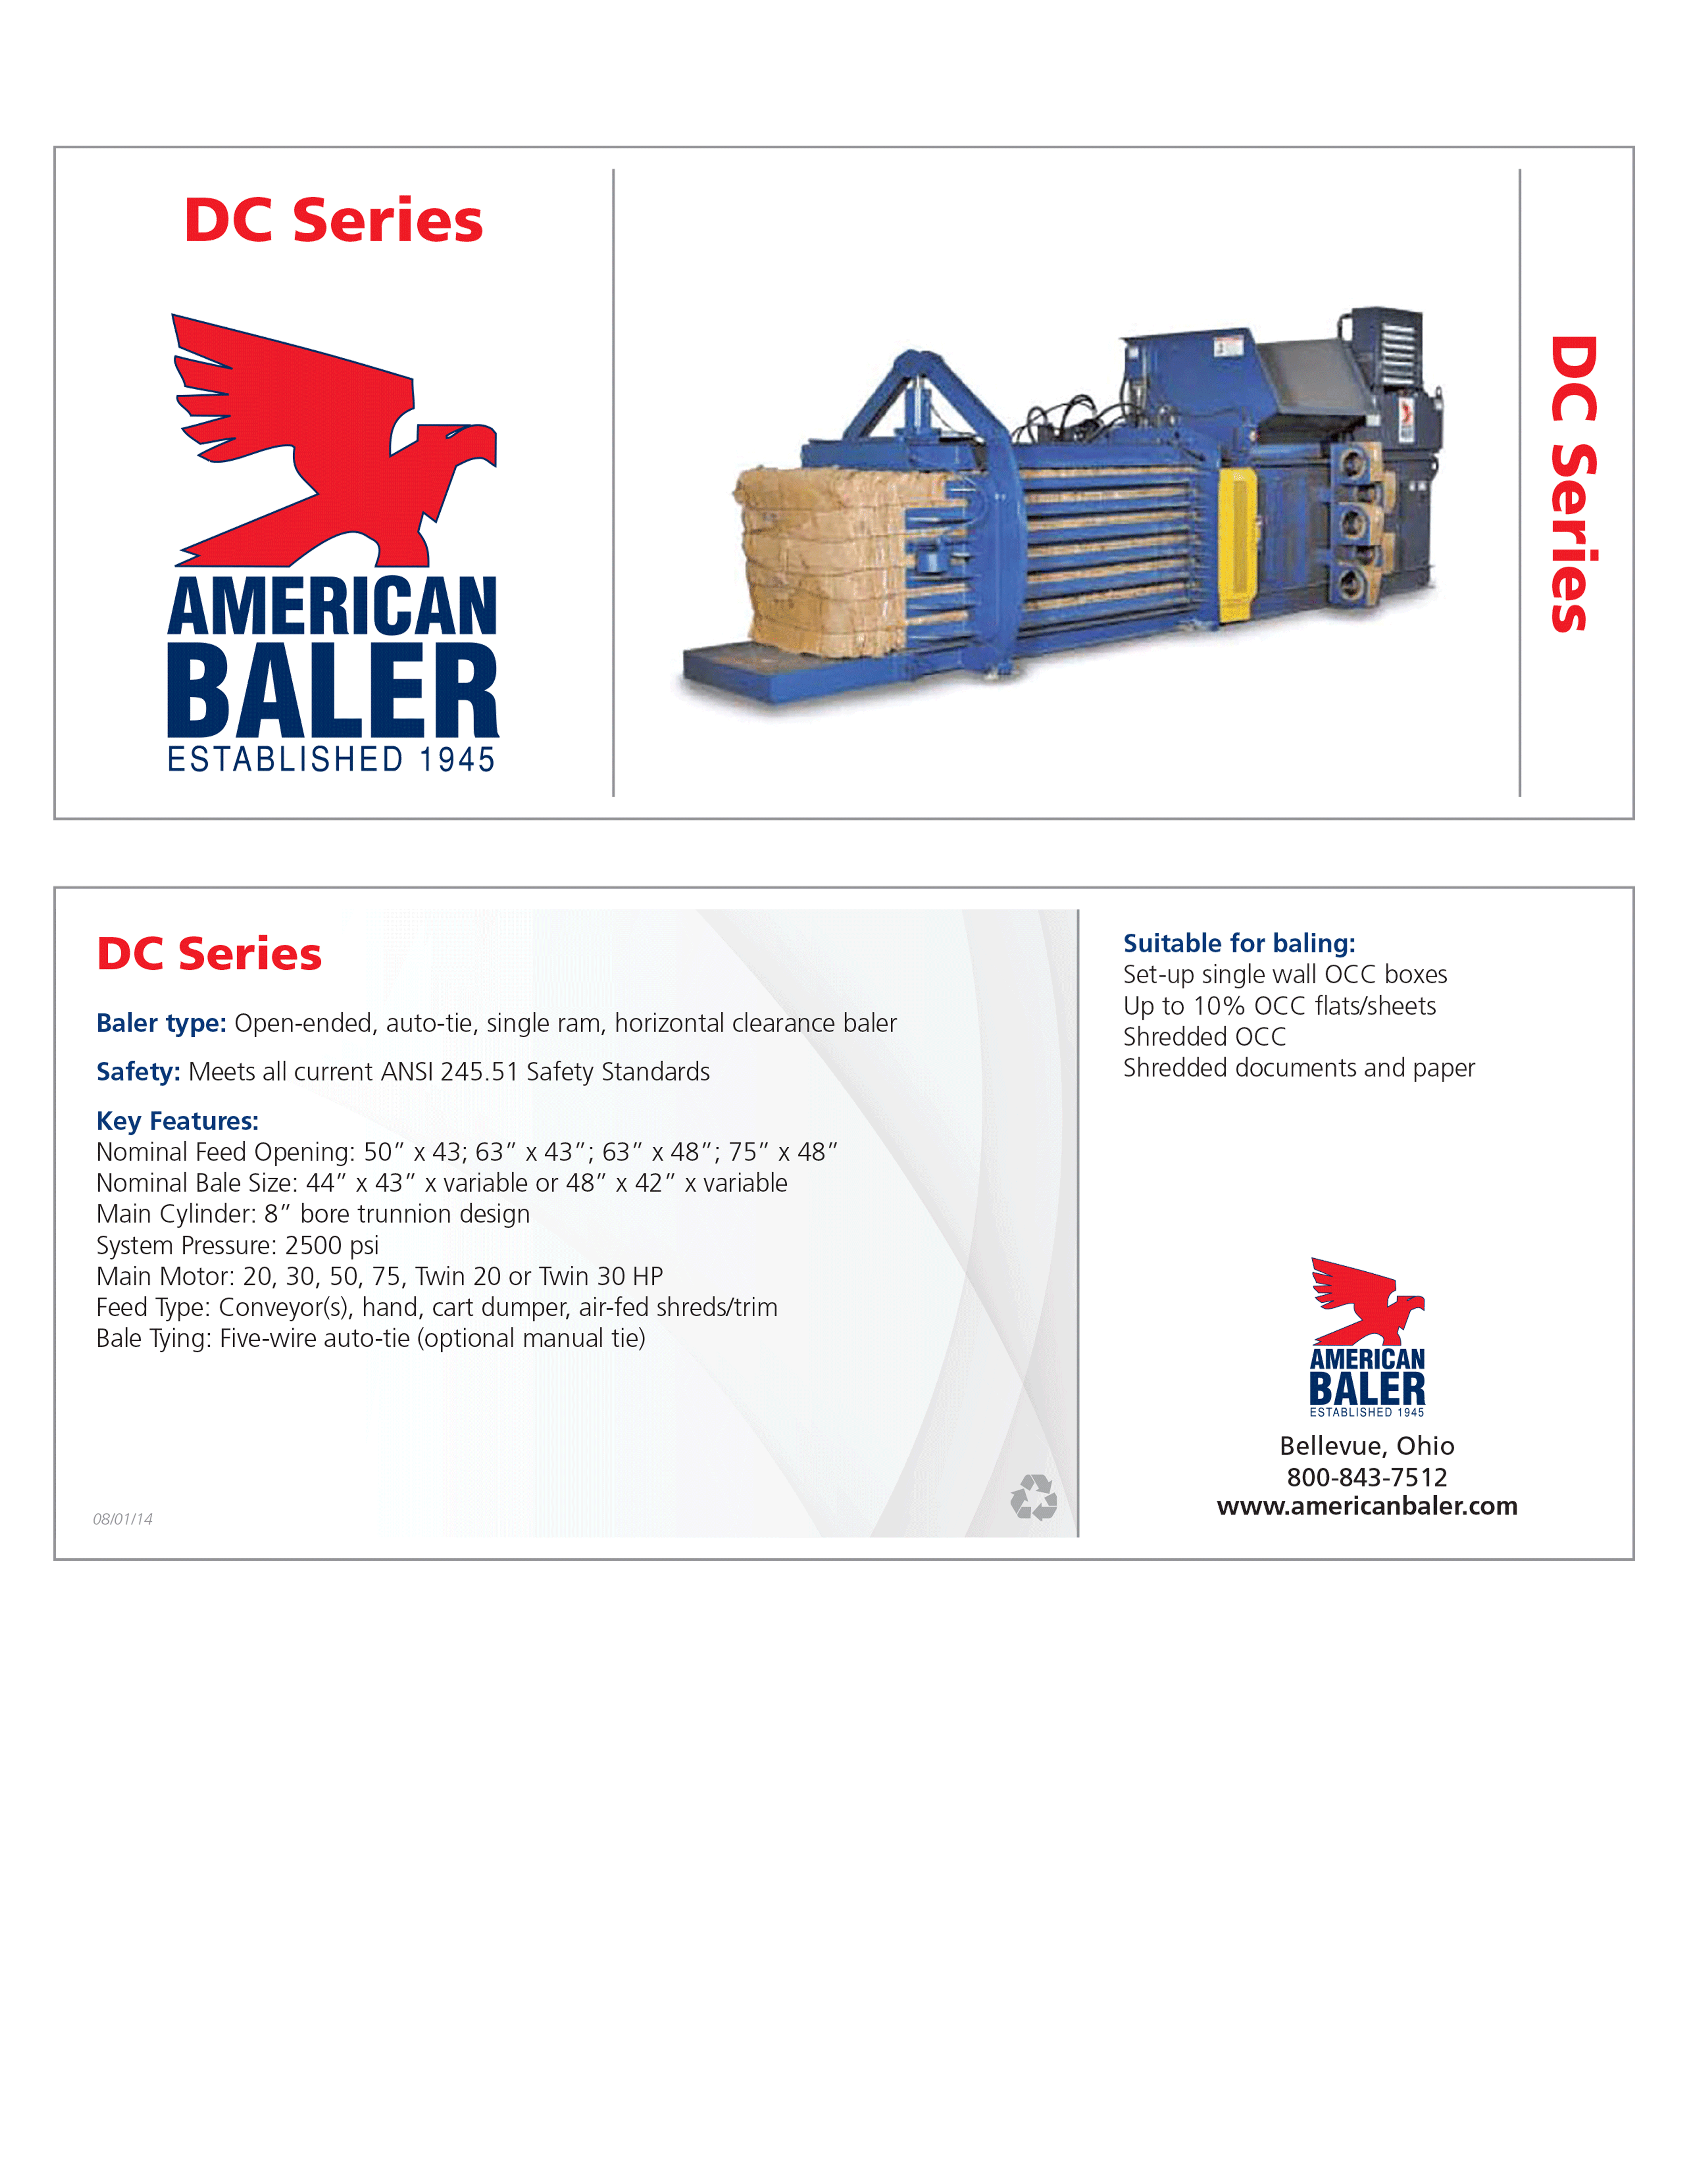 Learn more about the DC Series Baler in American Baler's Brochure.